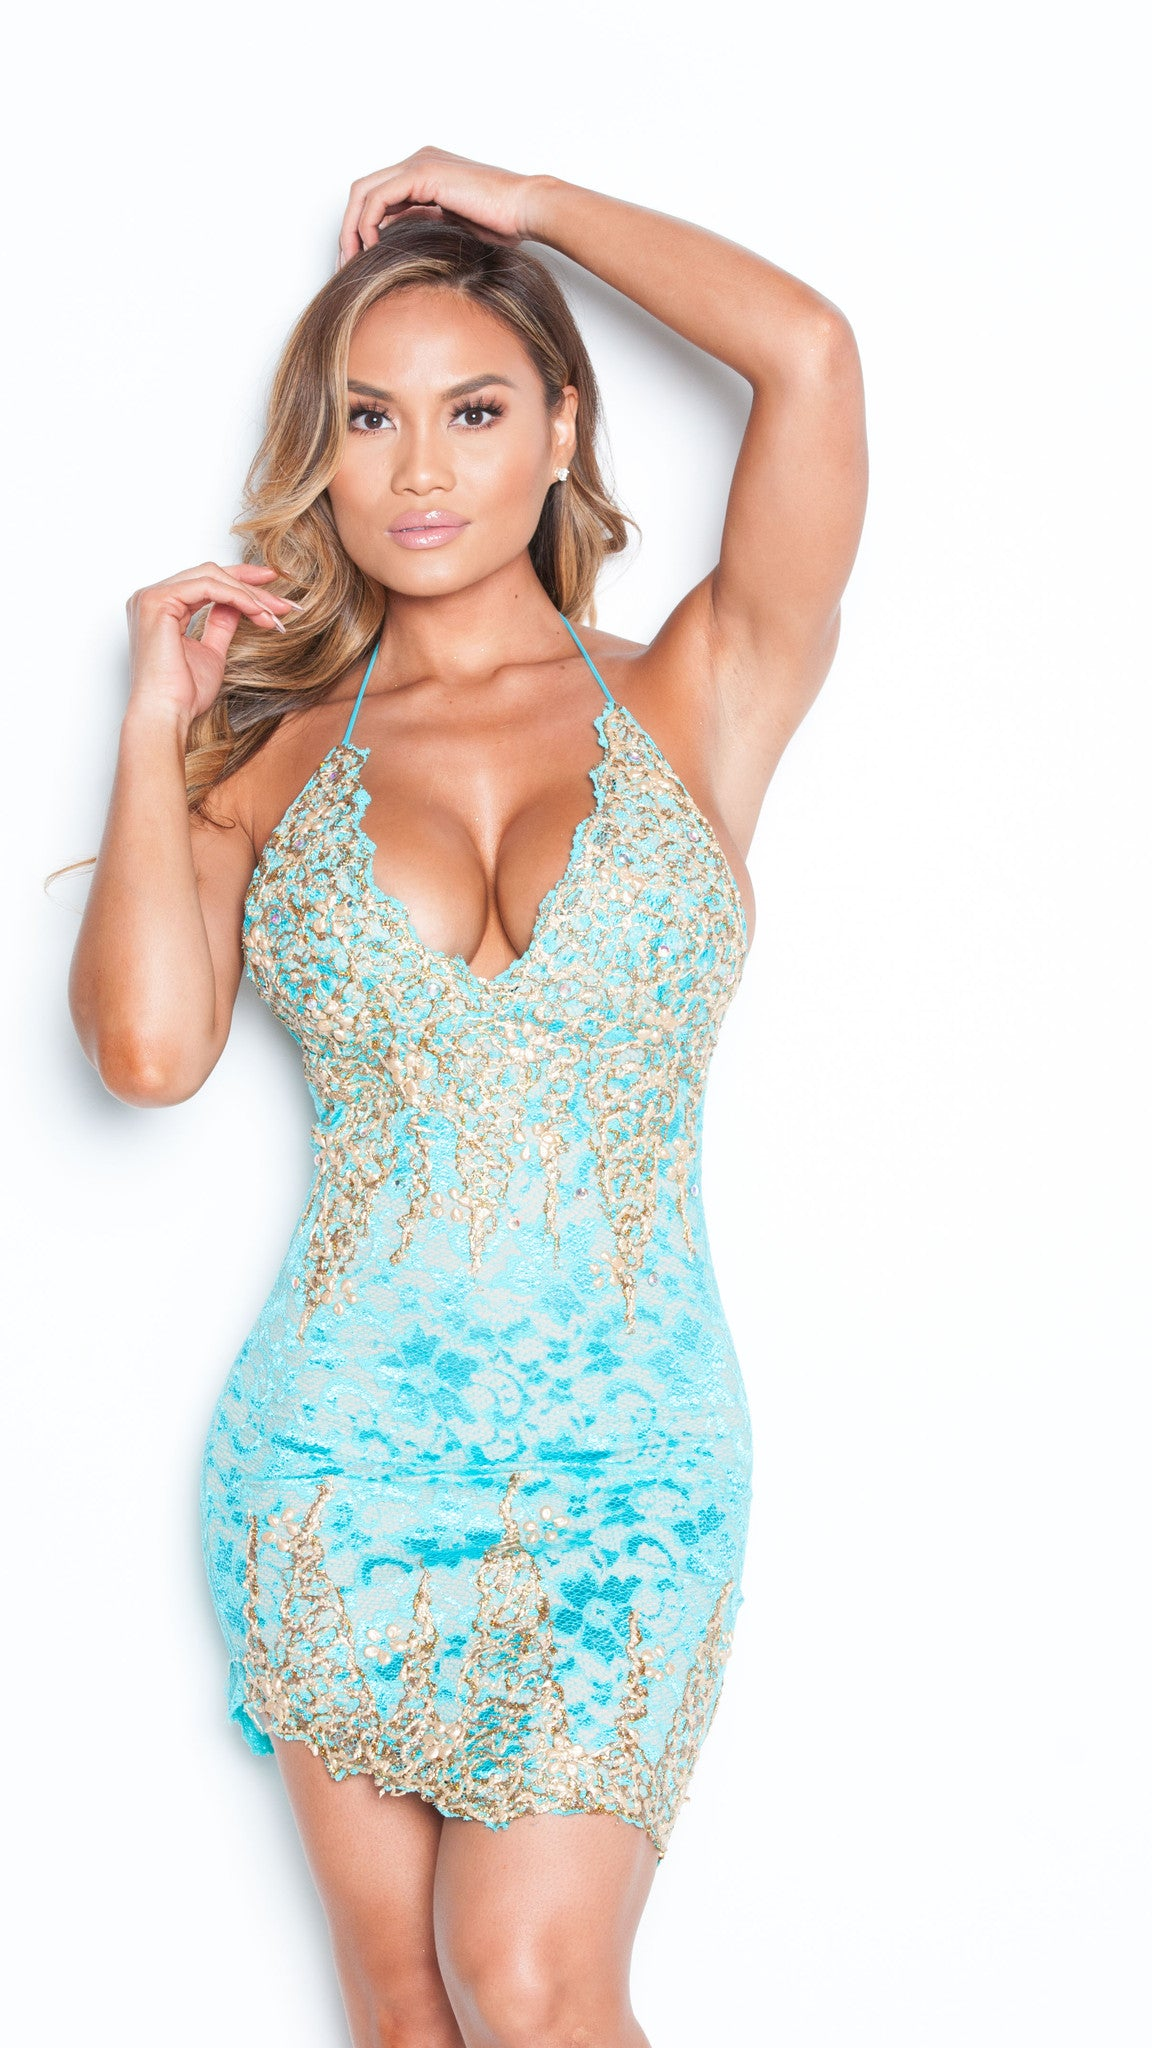 BROOKLYN LACE DRESS IN TURQUOISE WITH GOLD